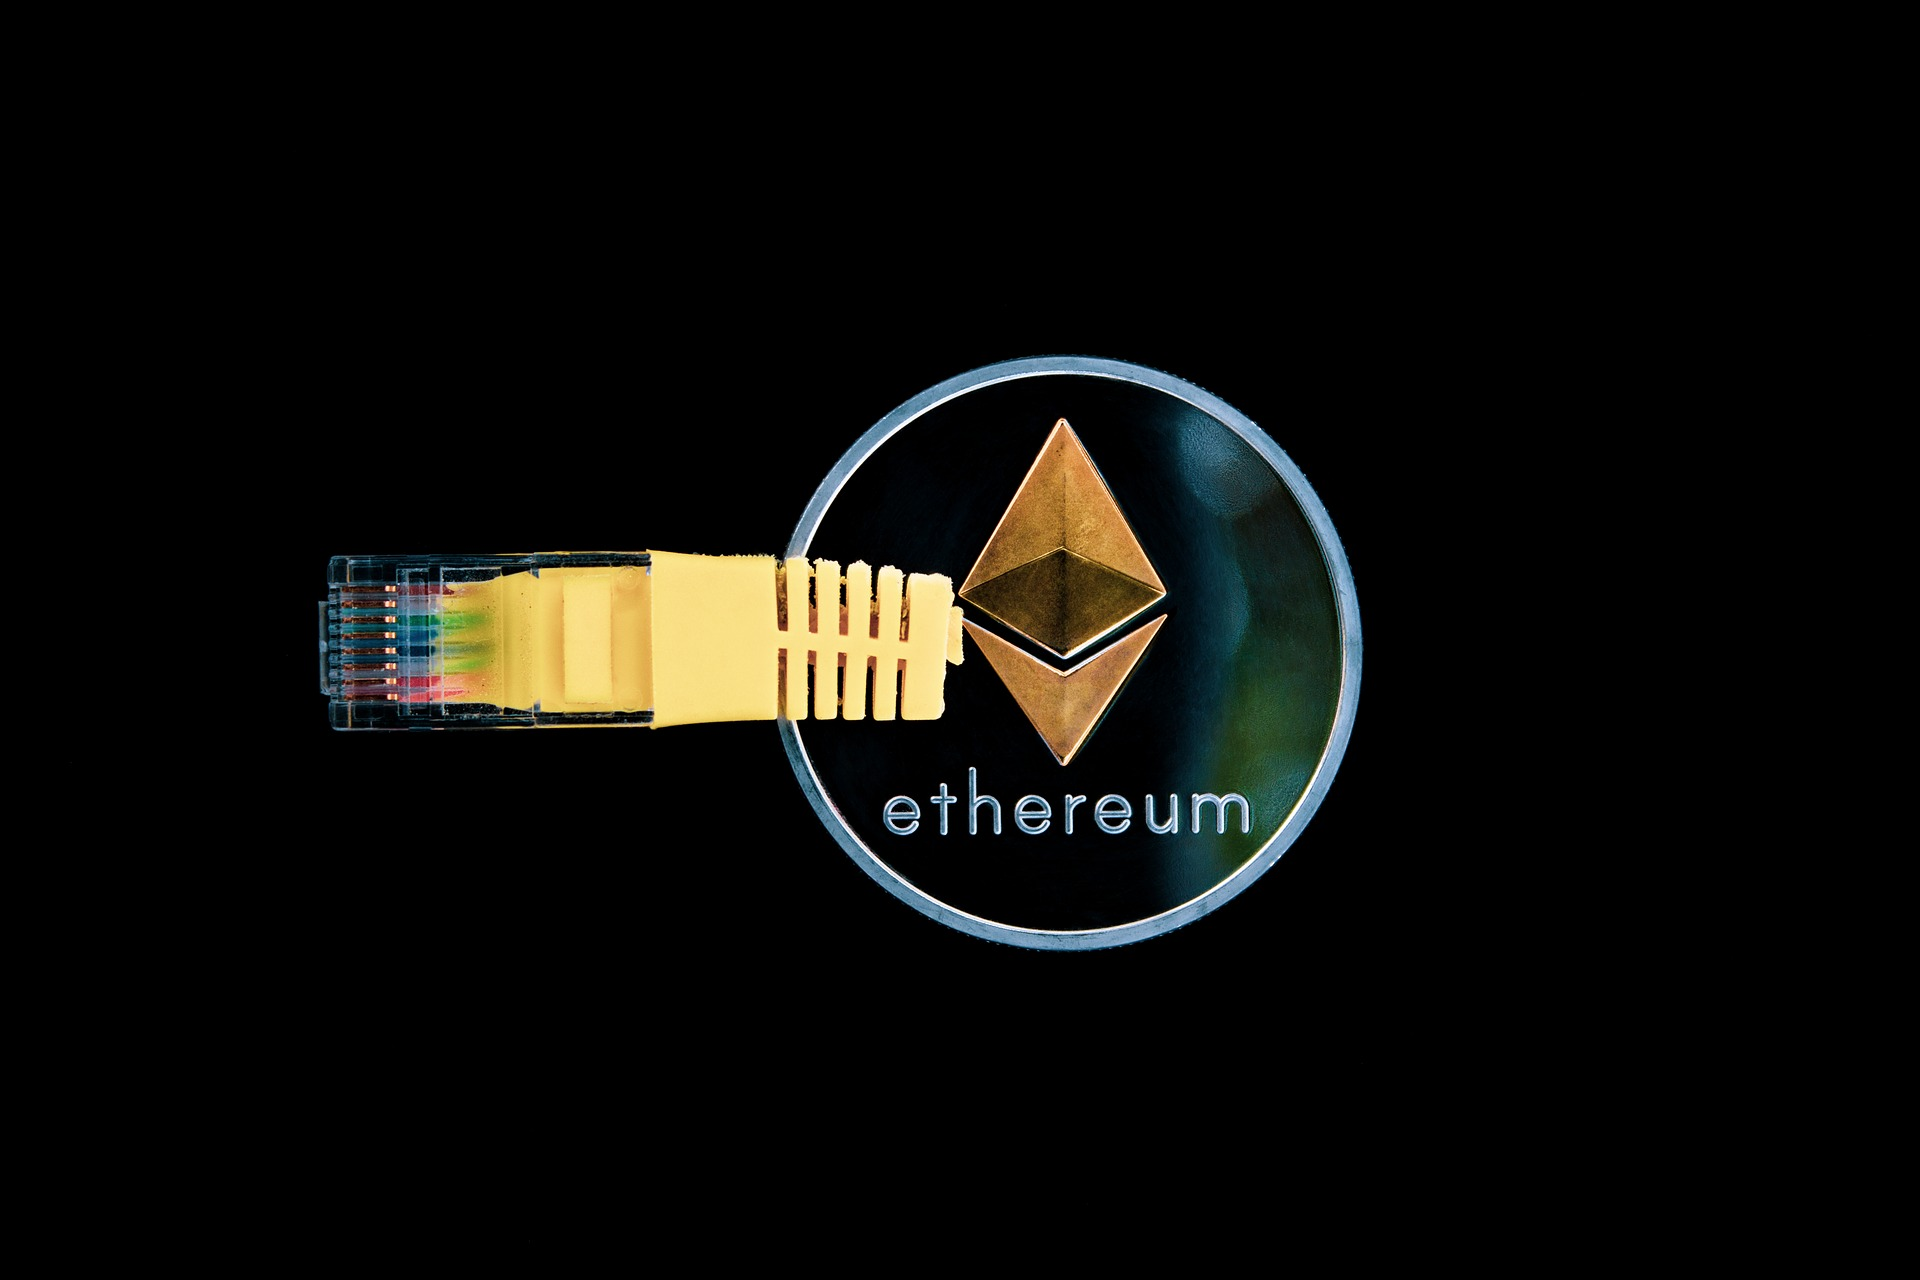 How Ethereum Works: It Seems Like We're Living in a Futuristic Alternate Universe - Worth